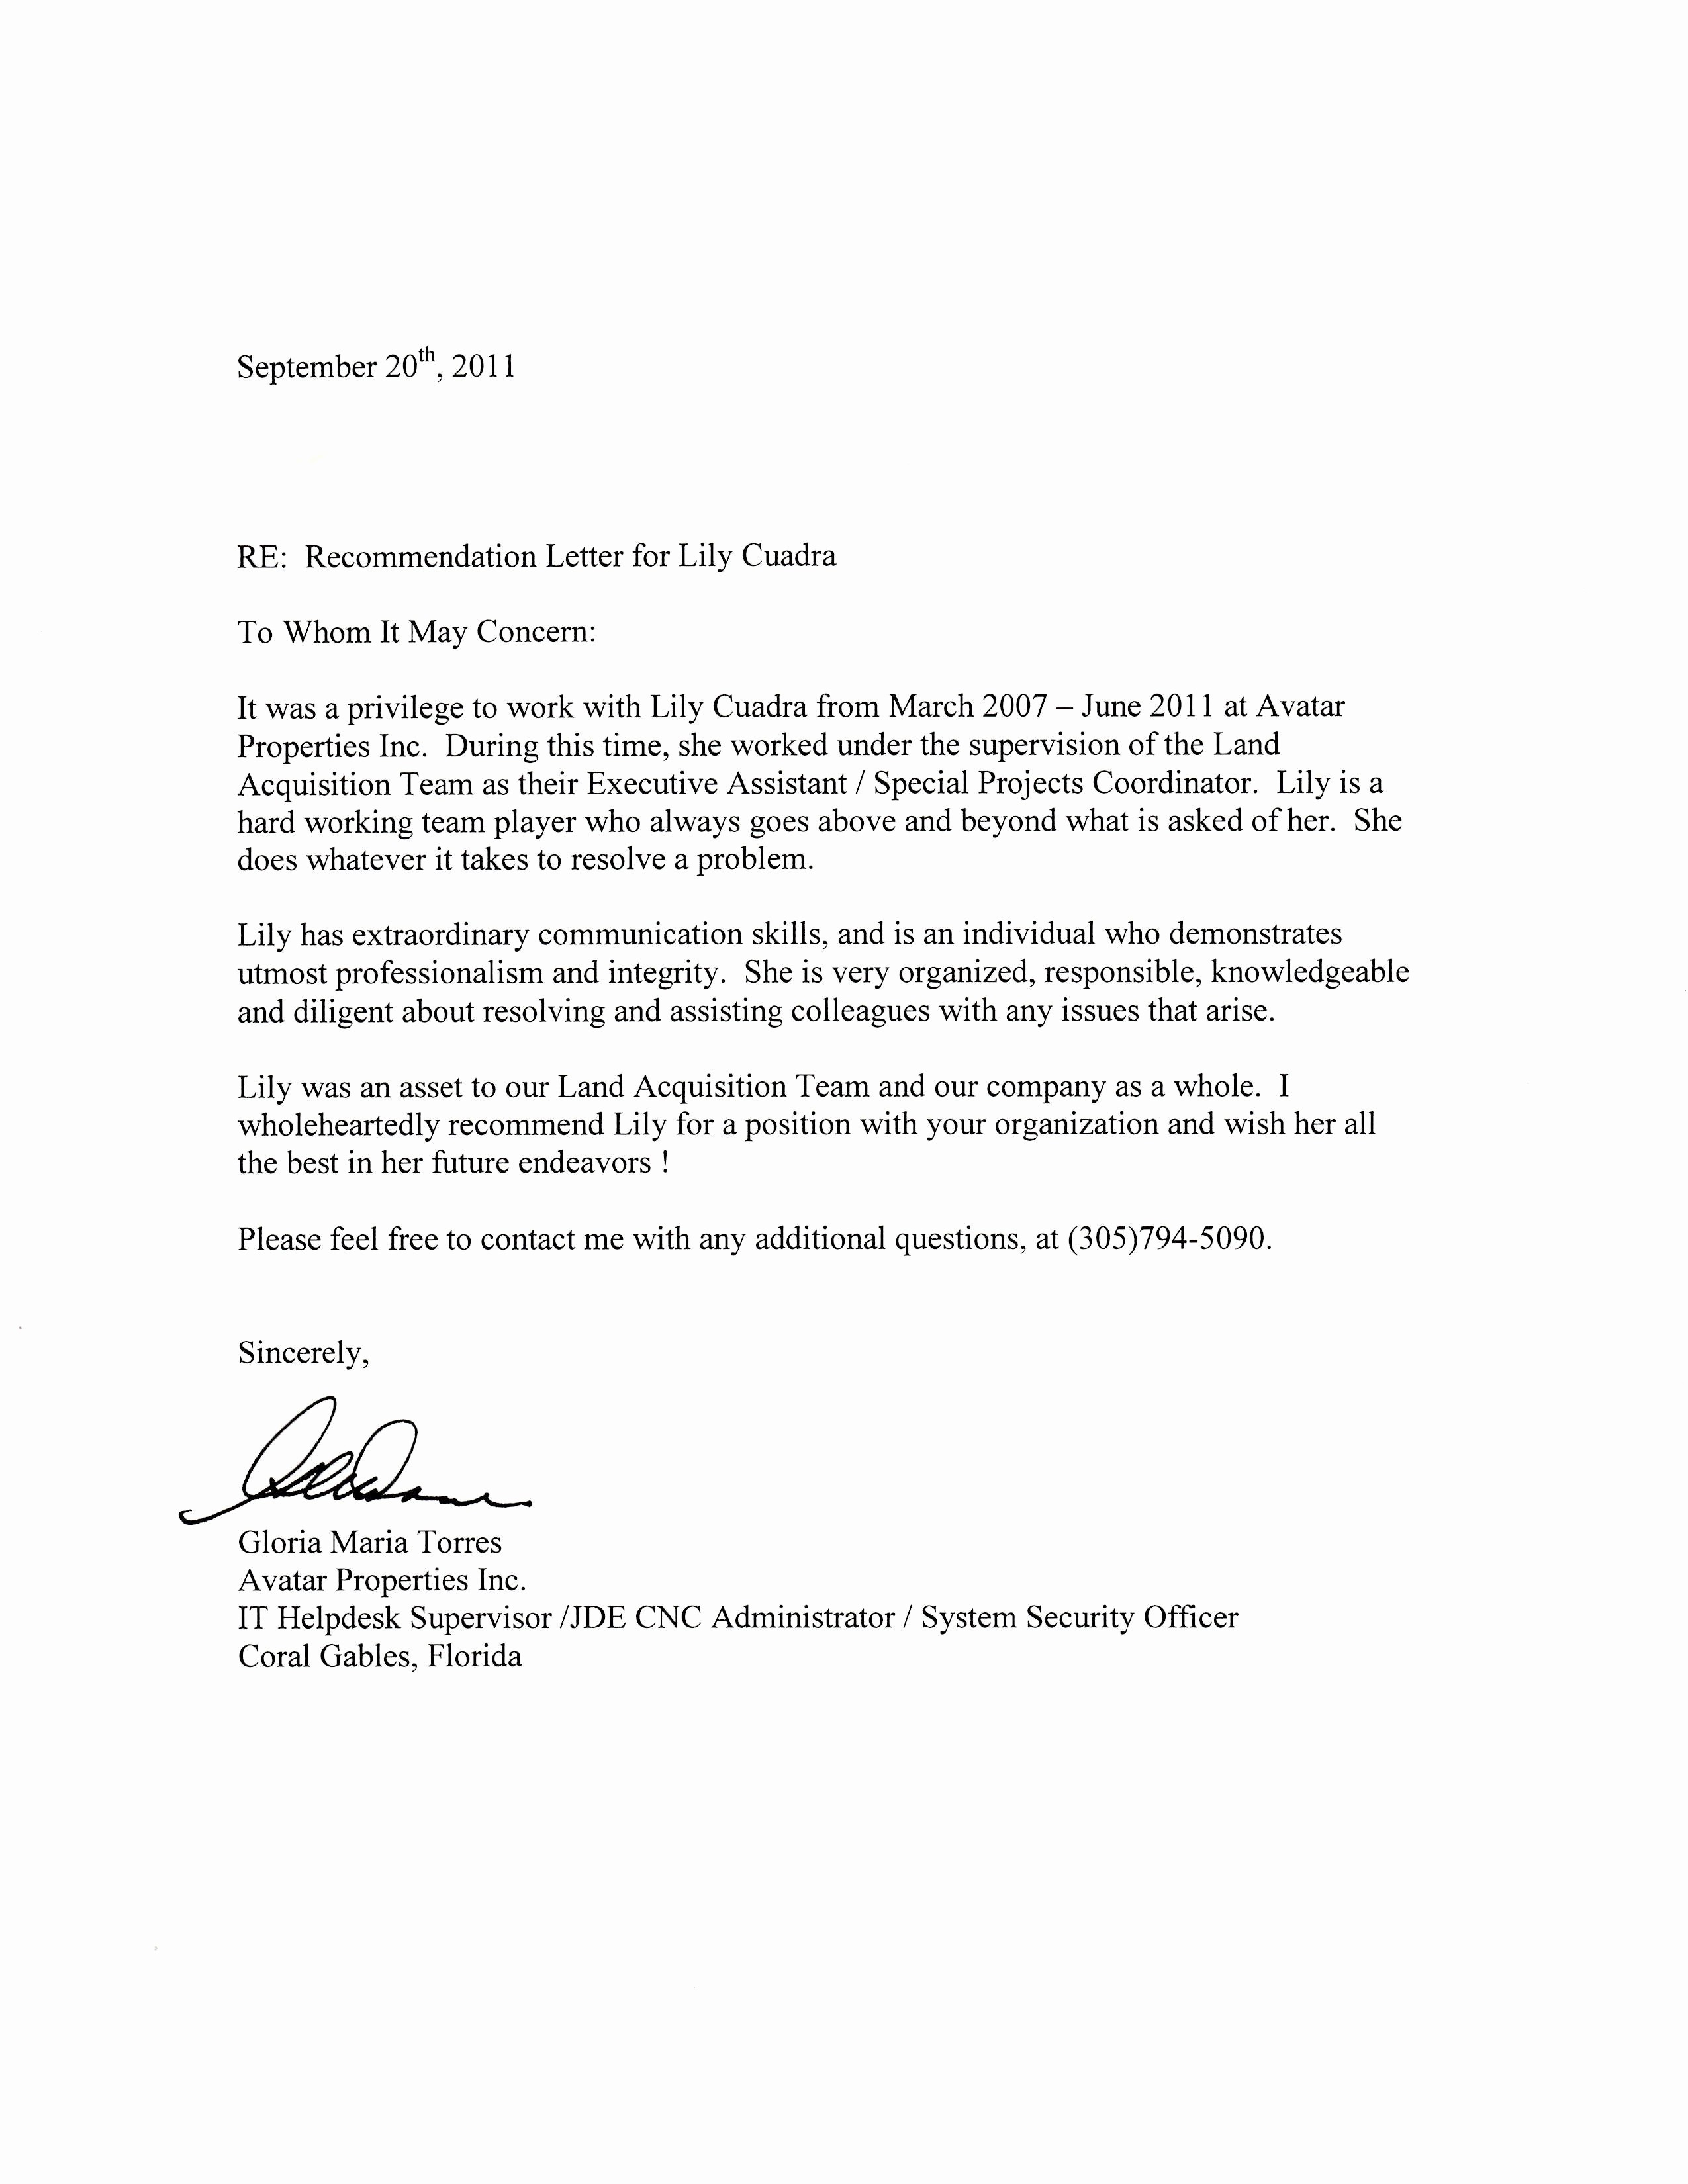 Letter Of Recommendation Letter Example New Simple Guide Professional Reference Letter with Samples